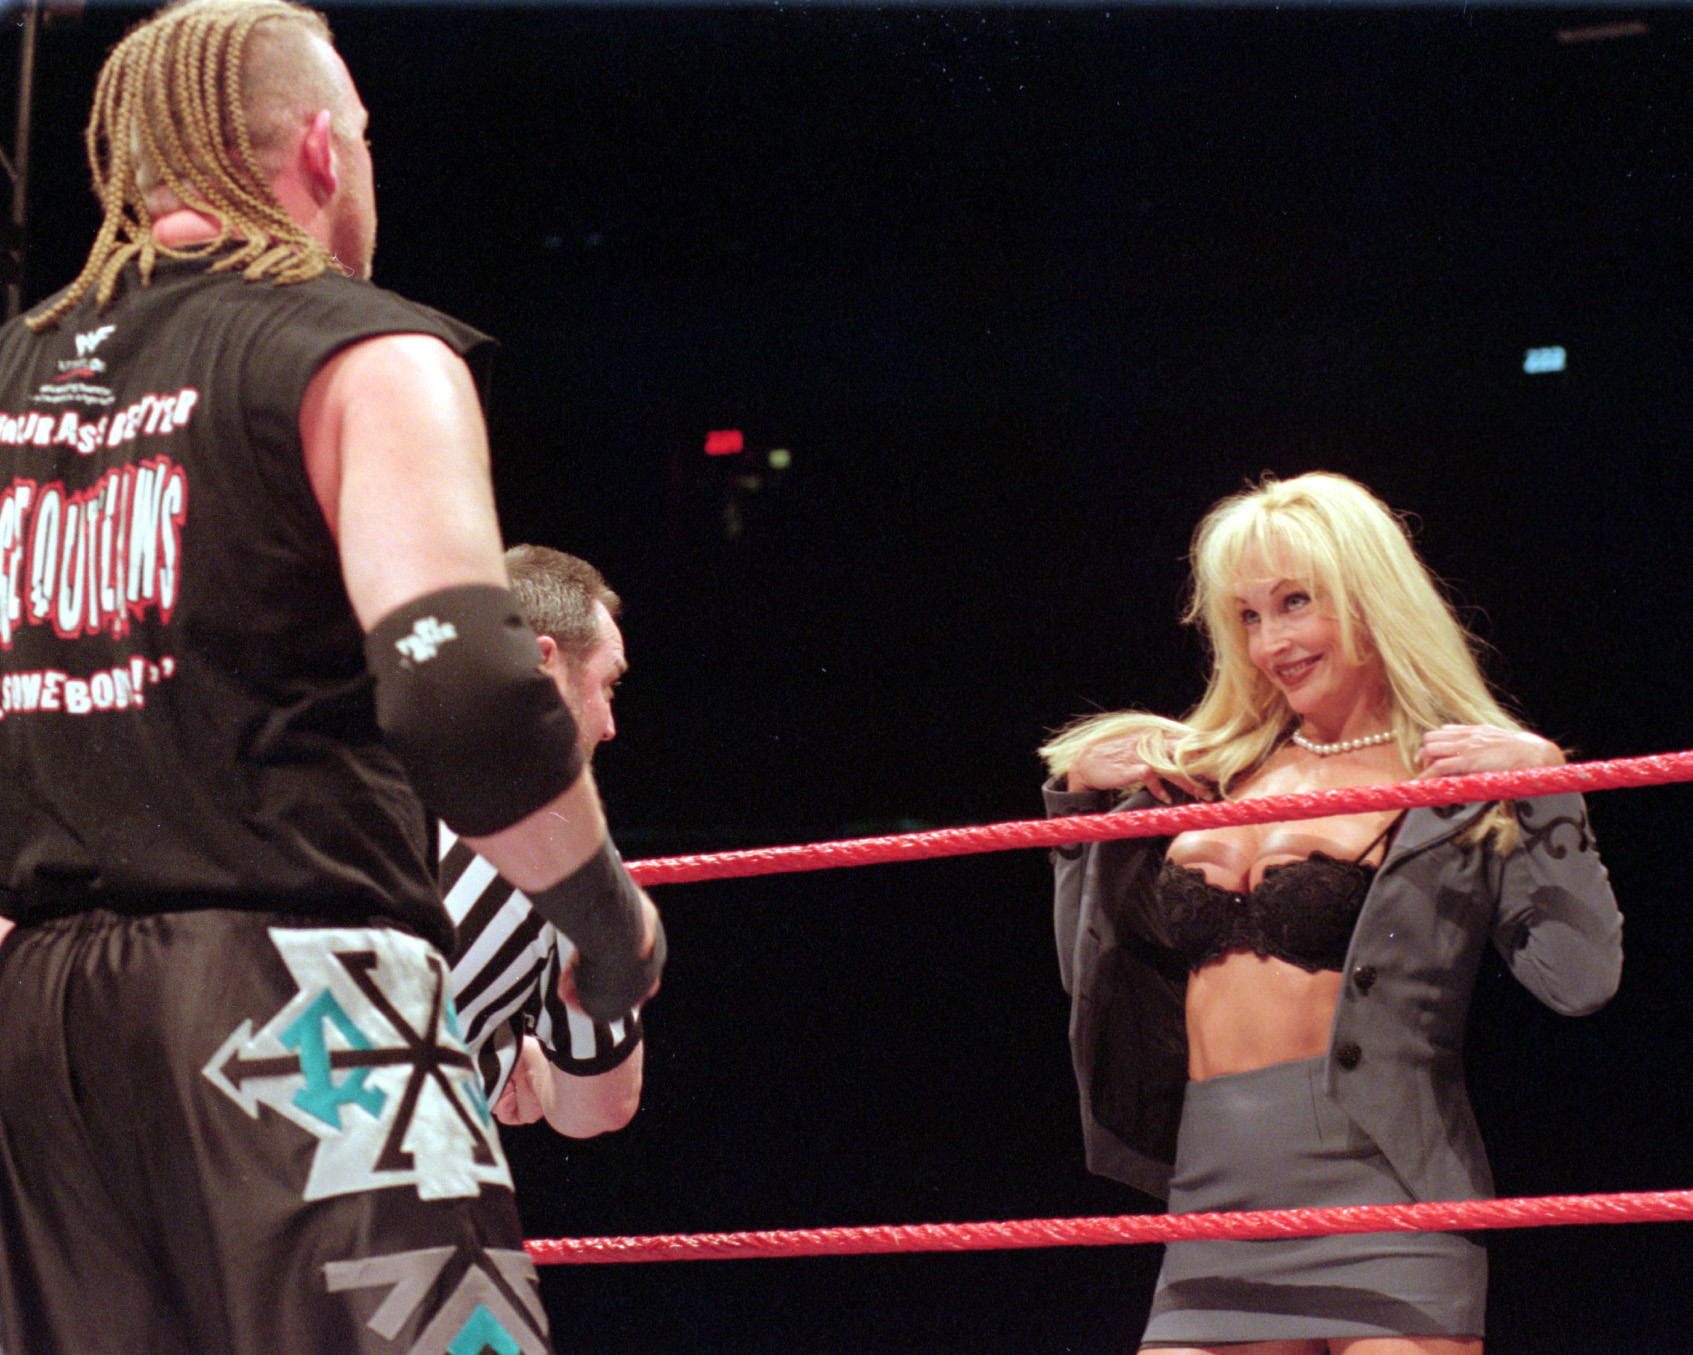 Debora,  a WWE diva, performs at the Skydome in Toronto on April 23, 1999